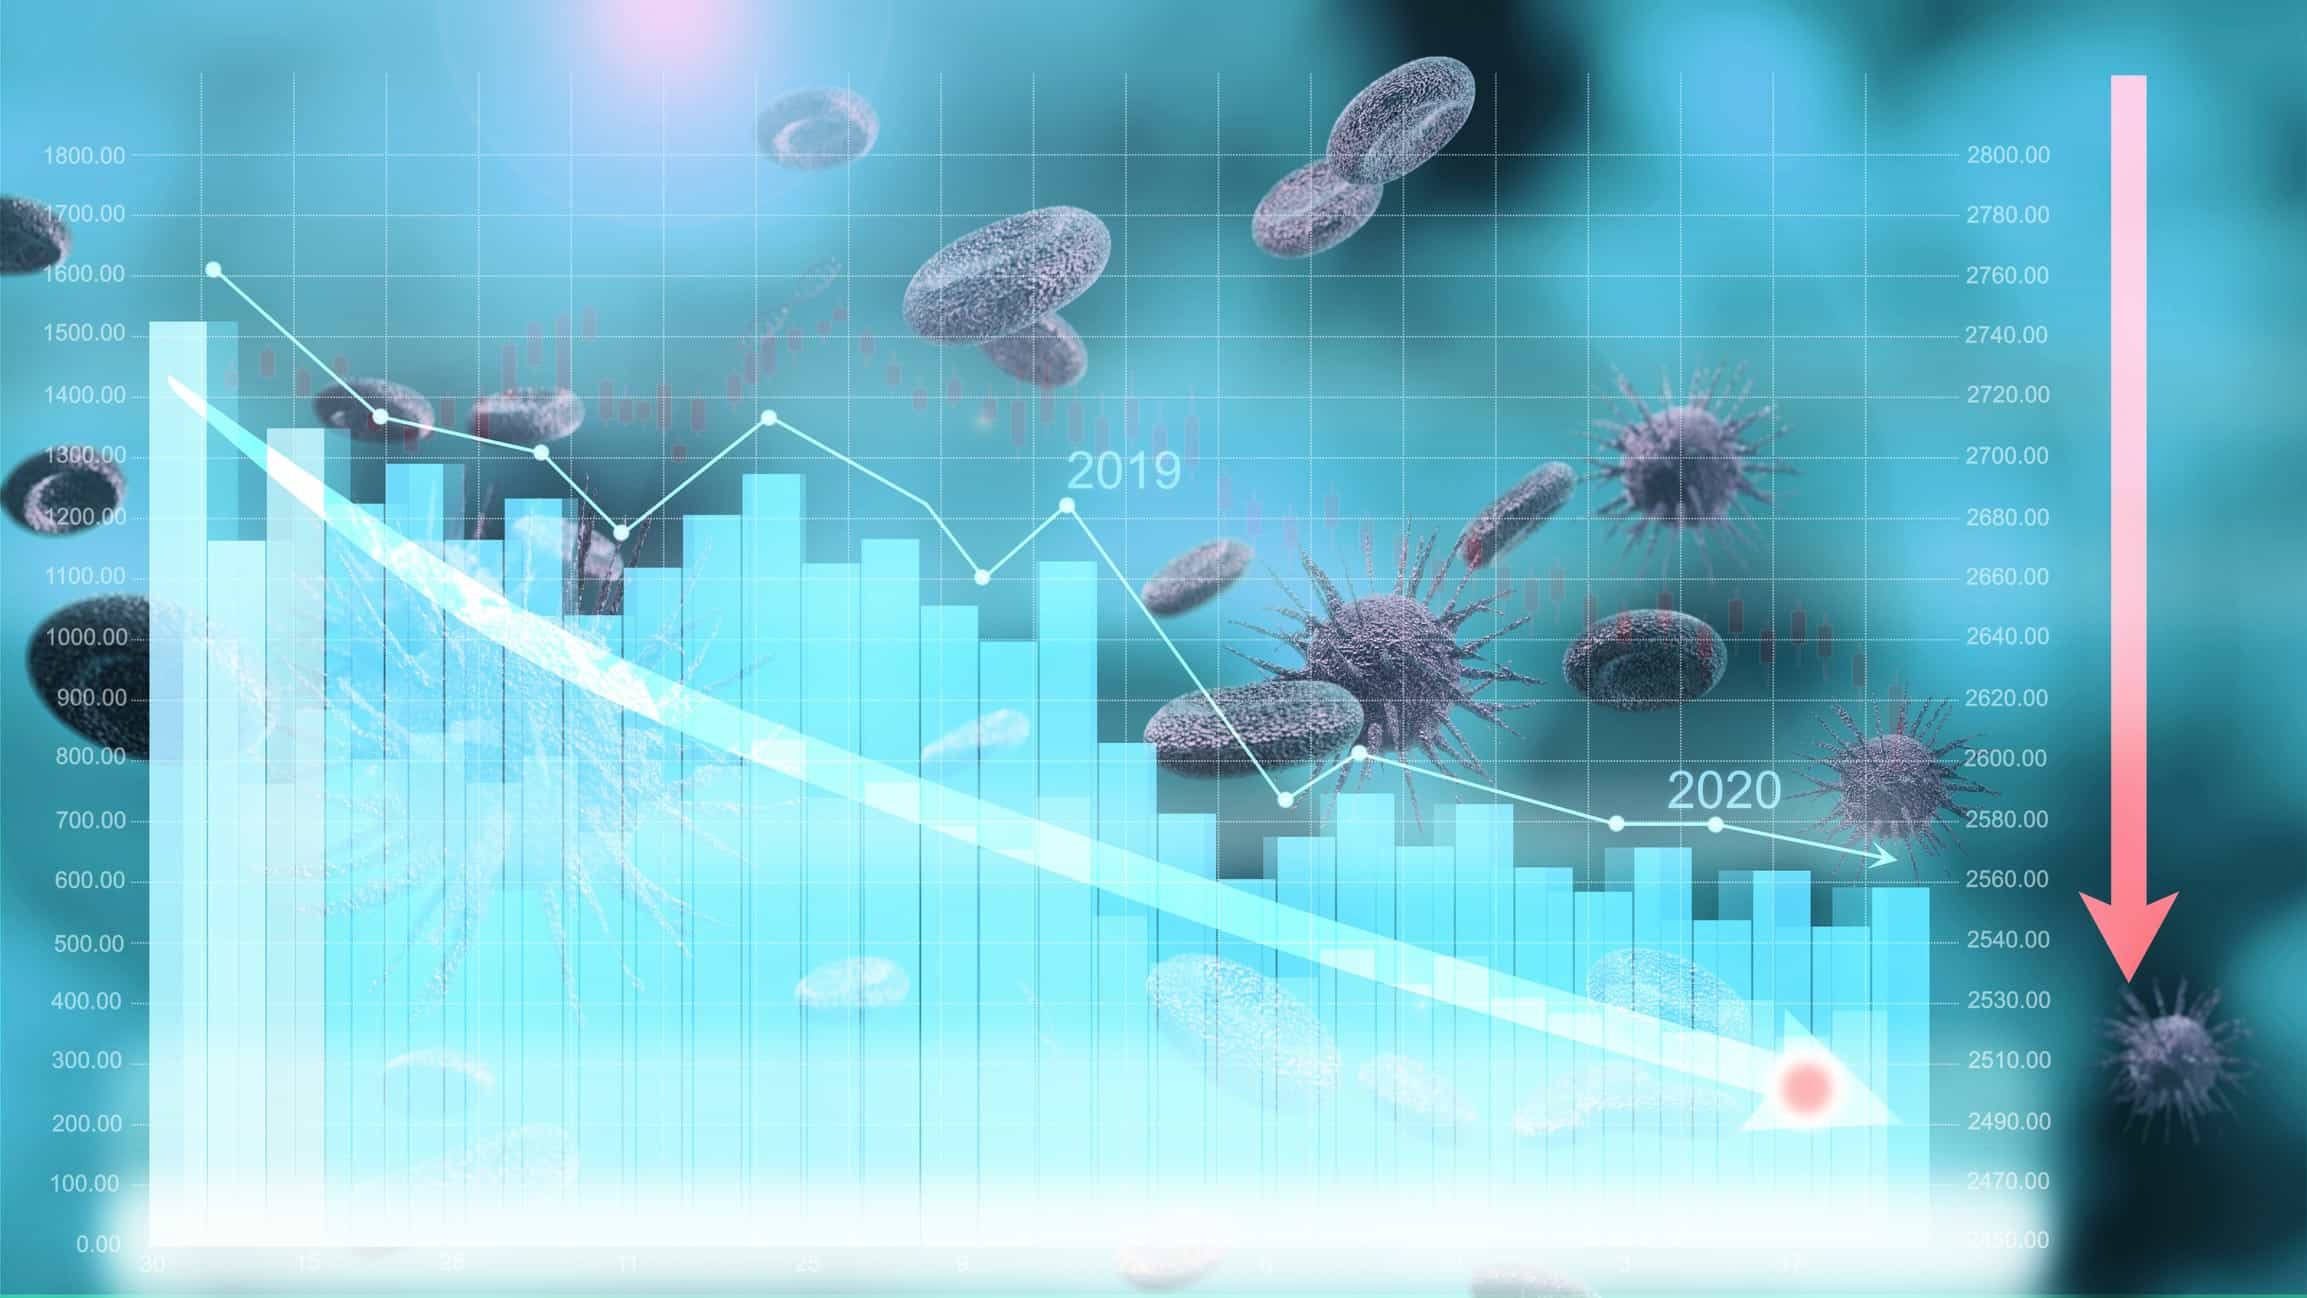 Graphic showing stock market crash with virus imagery overlaid